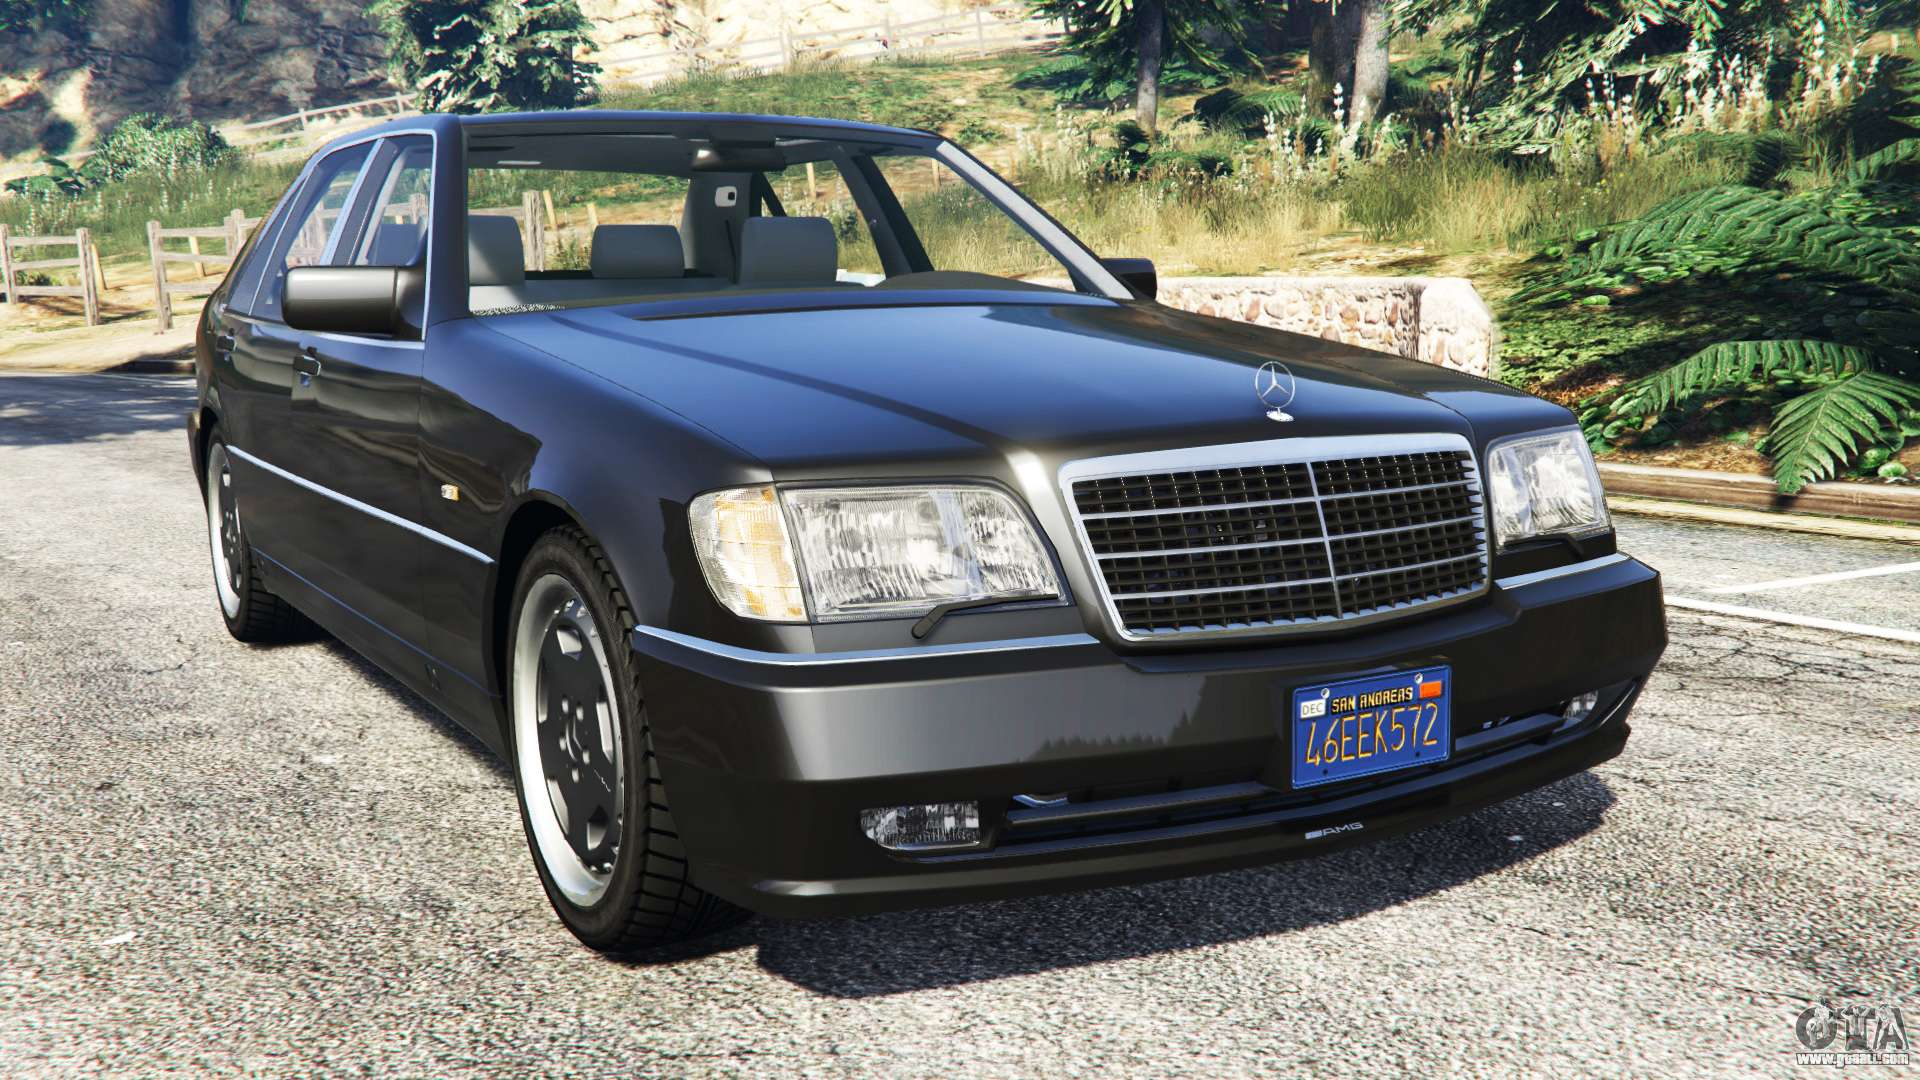 Mercedes benz w140 amg replace for gta 5 for Mercedes benz w140